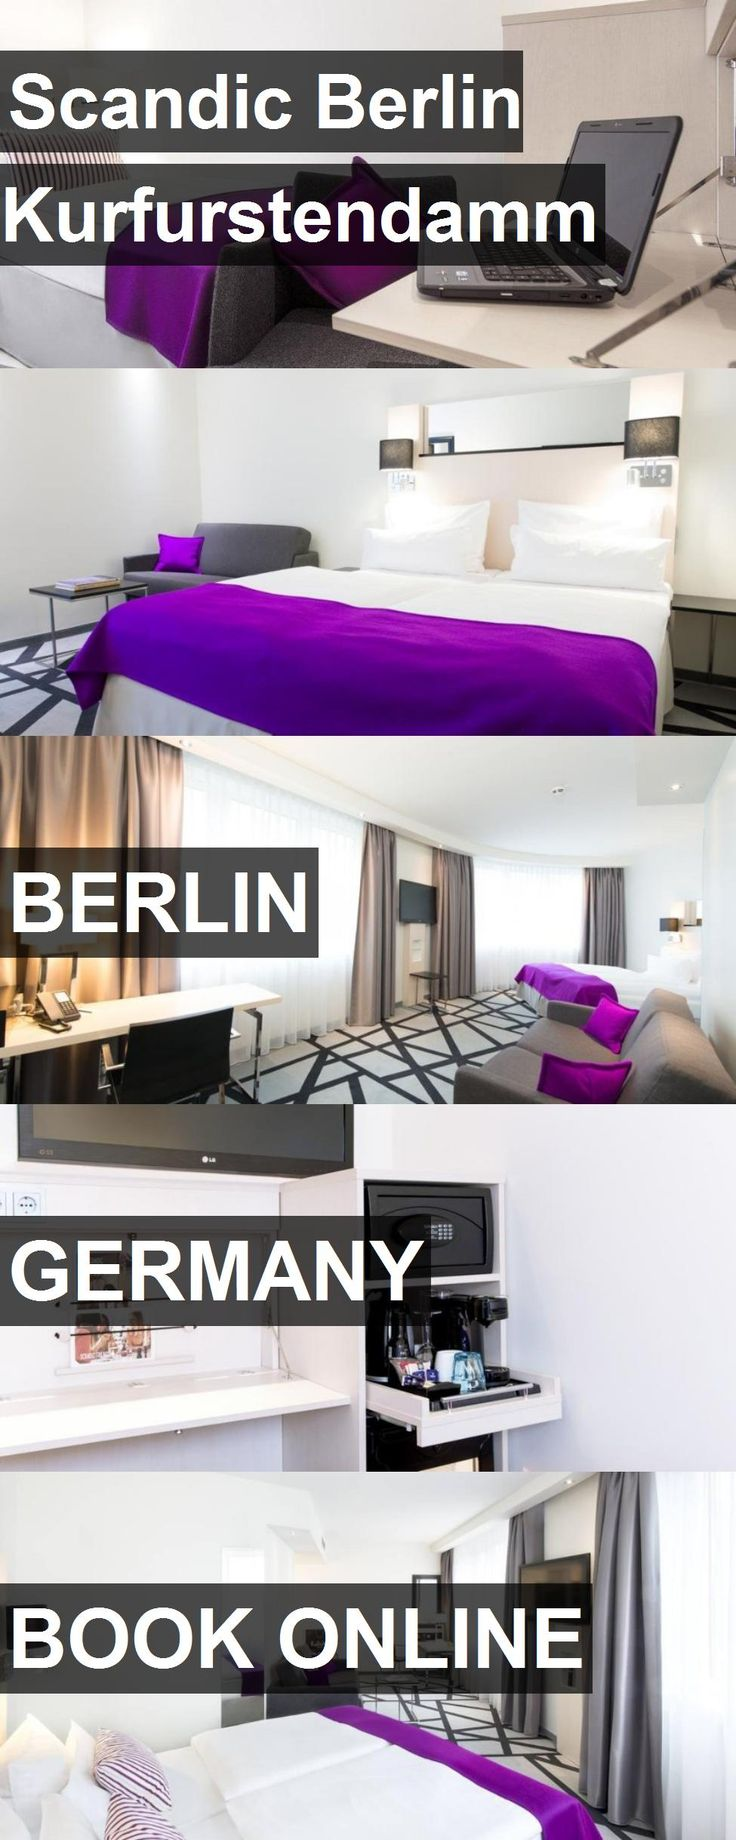 Hotel Scandic Berlin Kurfurstendamm in Berlin, Germany. For more information, photos, reviews and best prices please follow the link. #Germany #Berlin #ScandicBerlinKurfurstendamm #hotel #travel #vacation